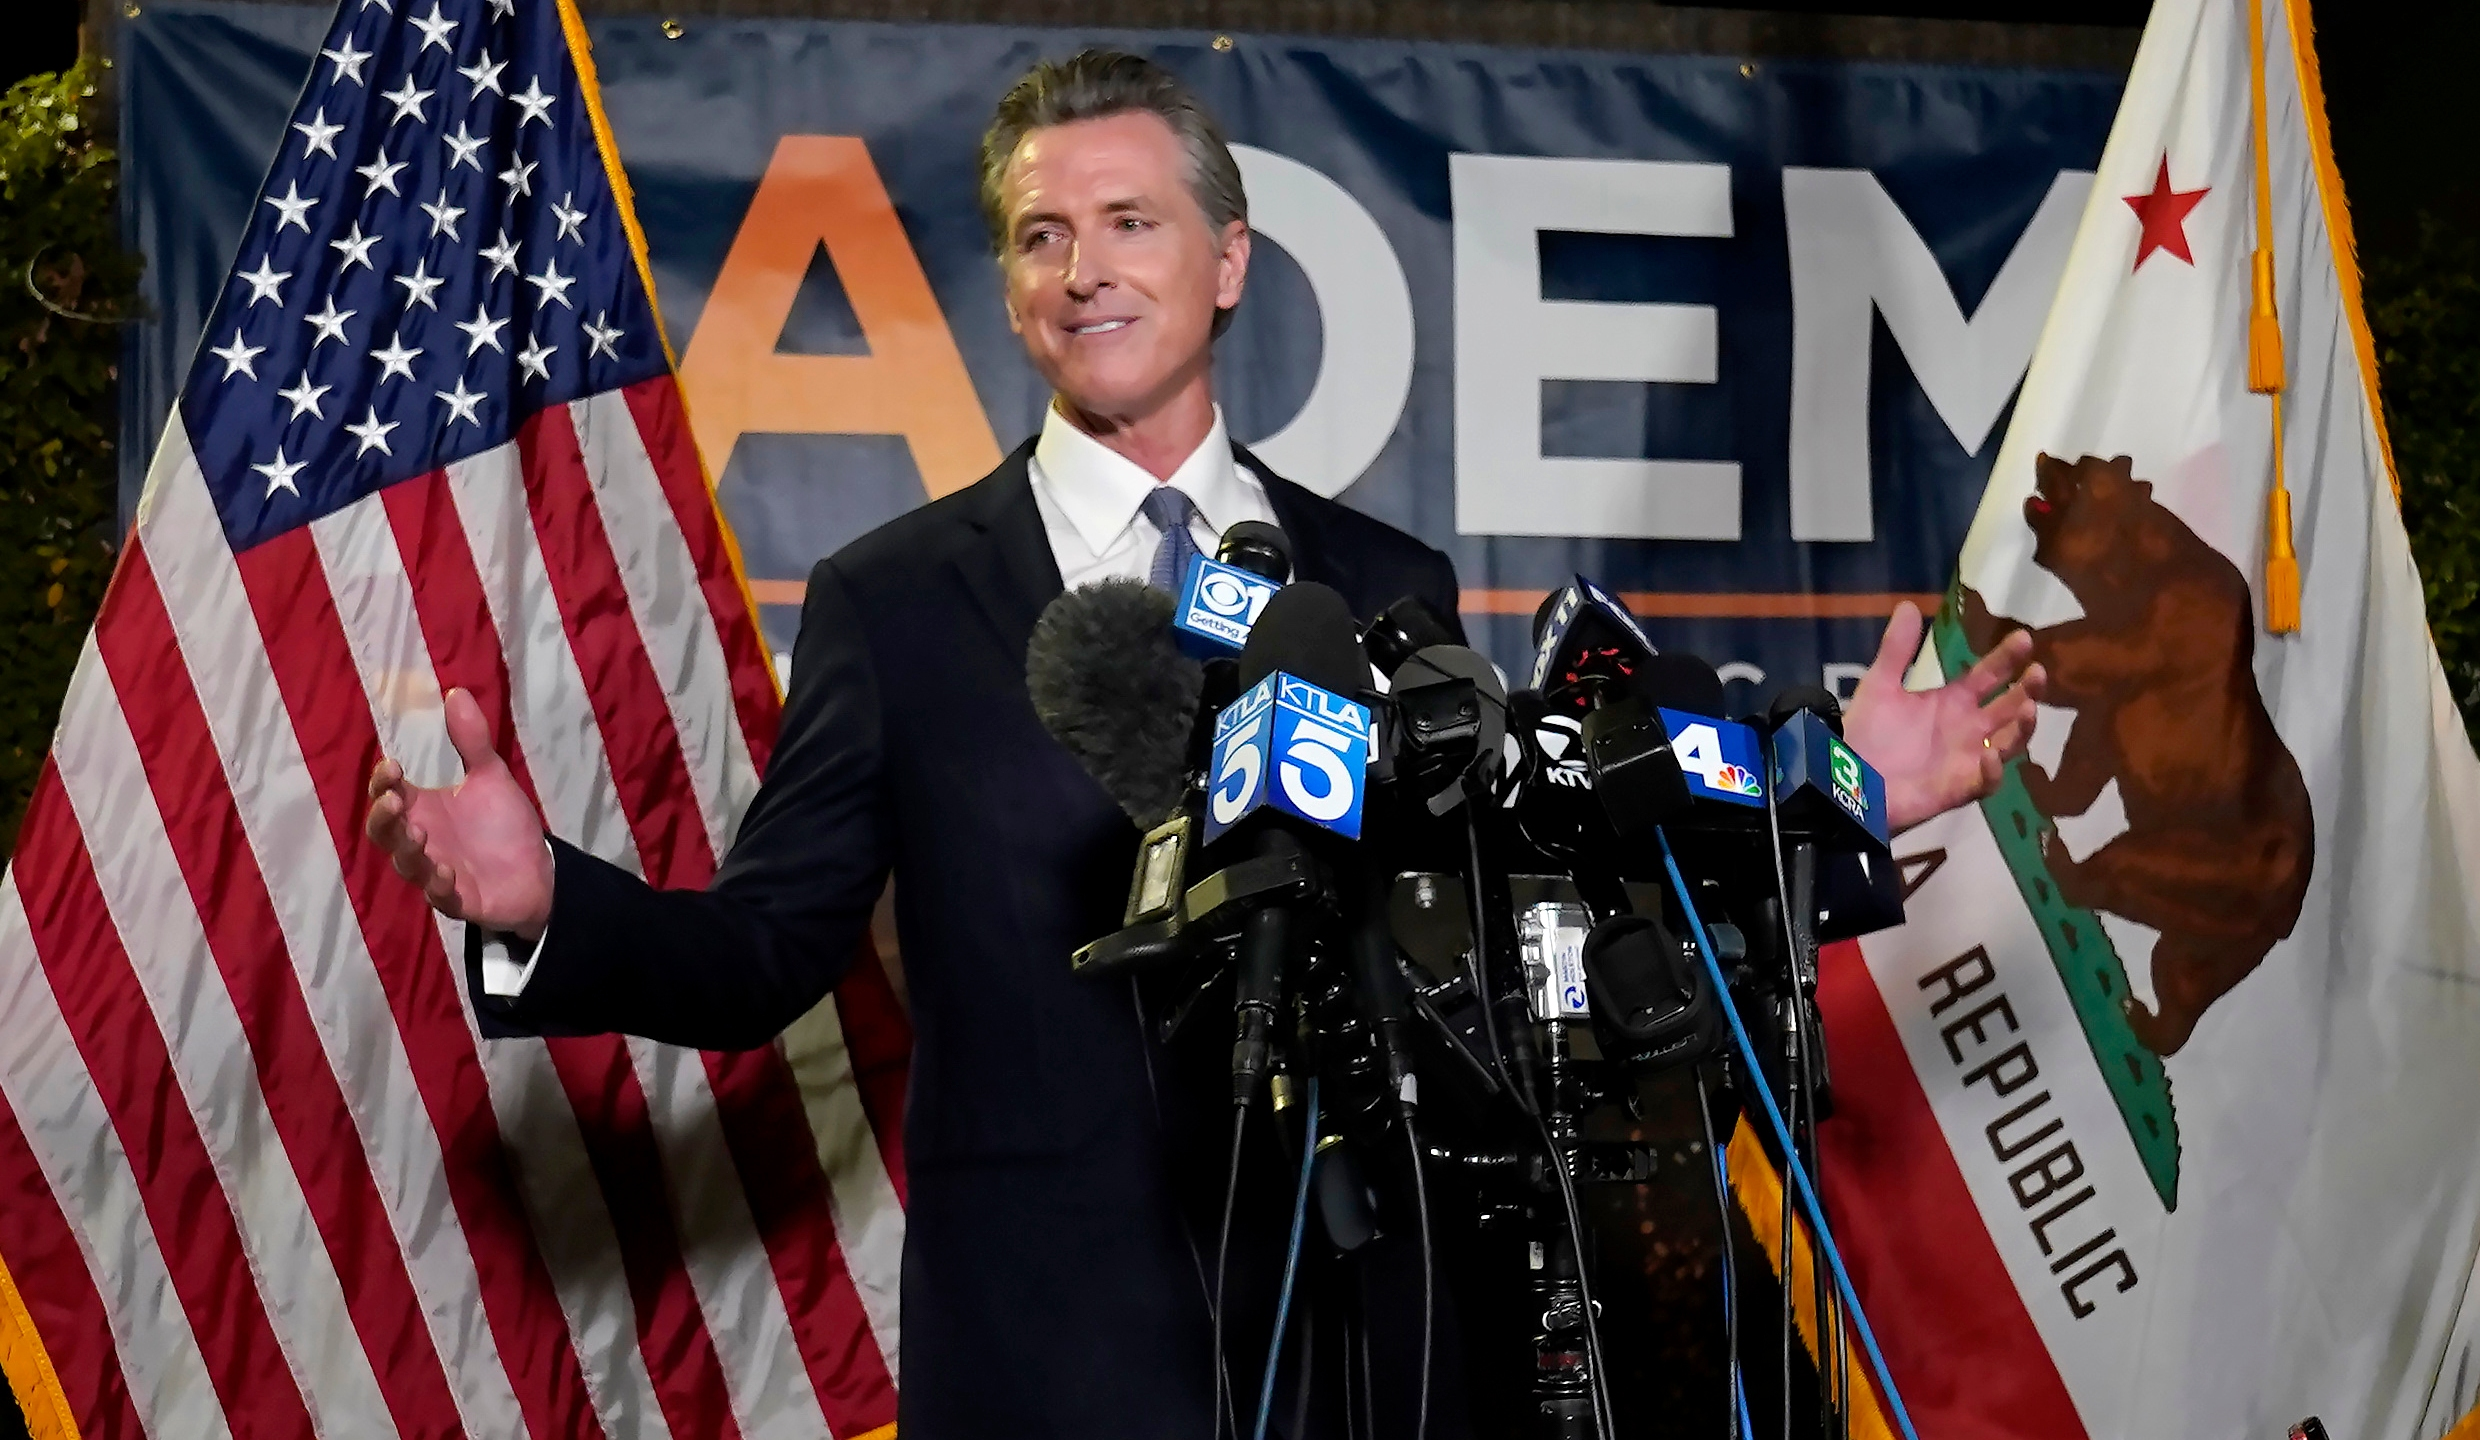 In this Sept. 14, 2021, file photo, California Gov. Gavin Newsom addresses reporters after beating back the recall attempt that aimed to remove him from office, in Sacramento, Calif. After surviving the attempted recall Newsom signed into law 92% of the bills lawmakers sent him at the end of the years legislative session that ended Sept. 10. (AP Photo/Rich Pedroncelli, File)